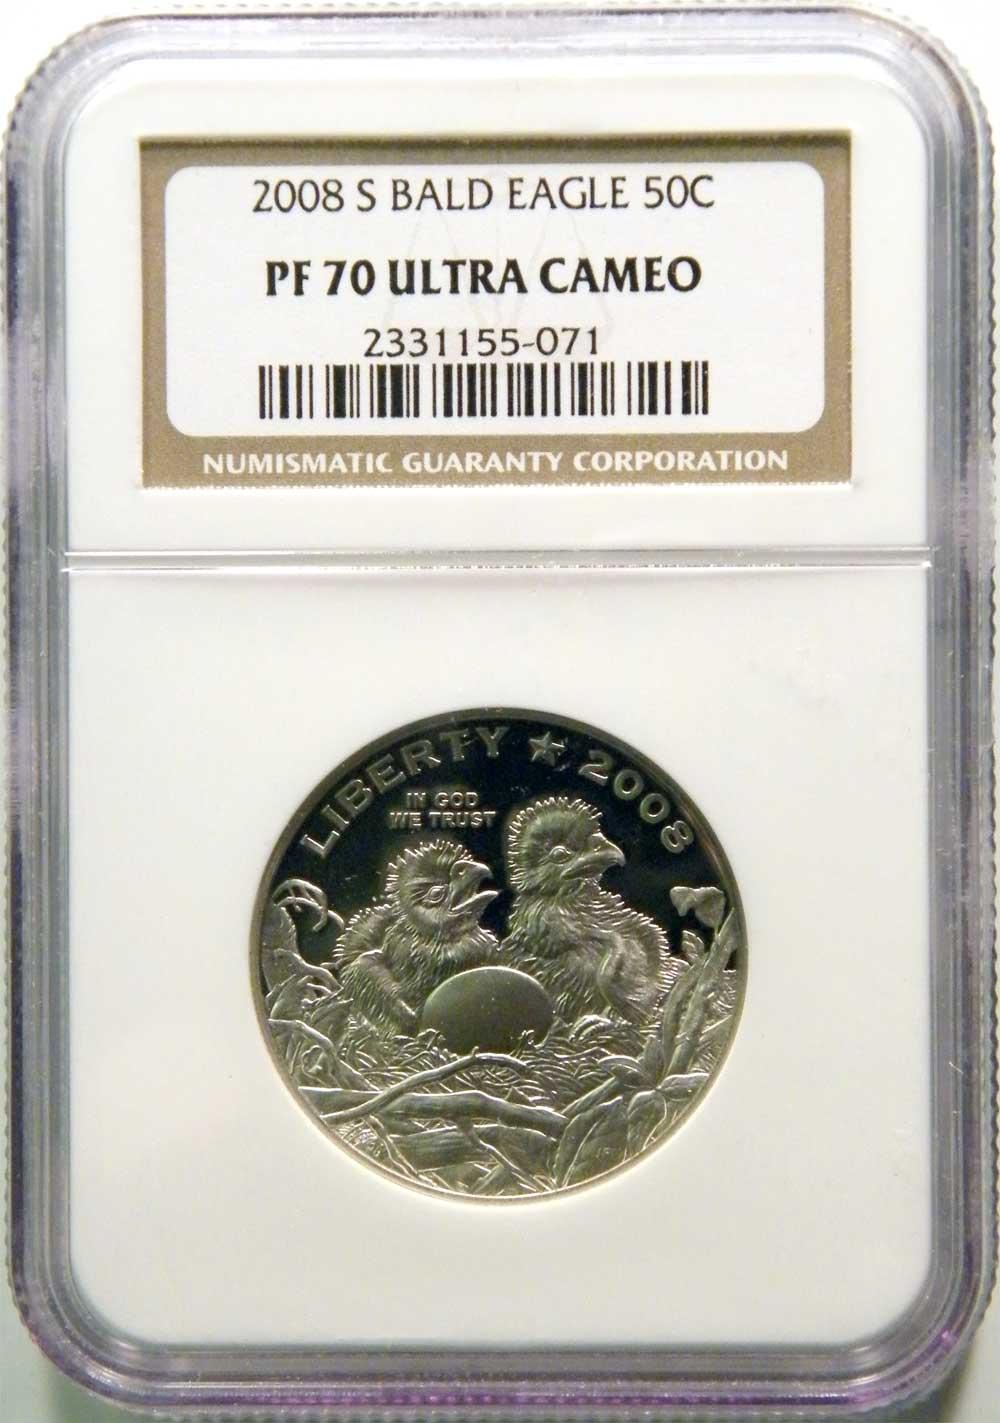 2008-S 50c Bald Eagle Half Dollar in NGC PF 70 UCAM COMMEMORATIVE ULTRA CAMEO